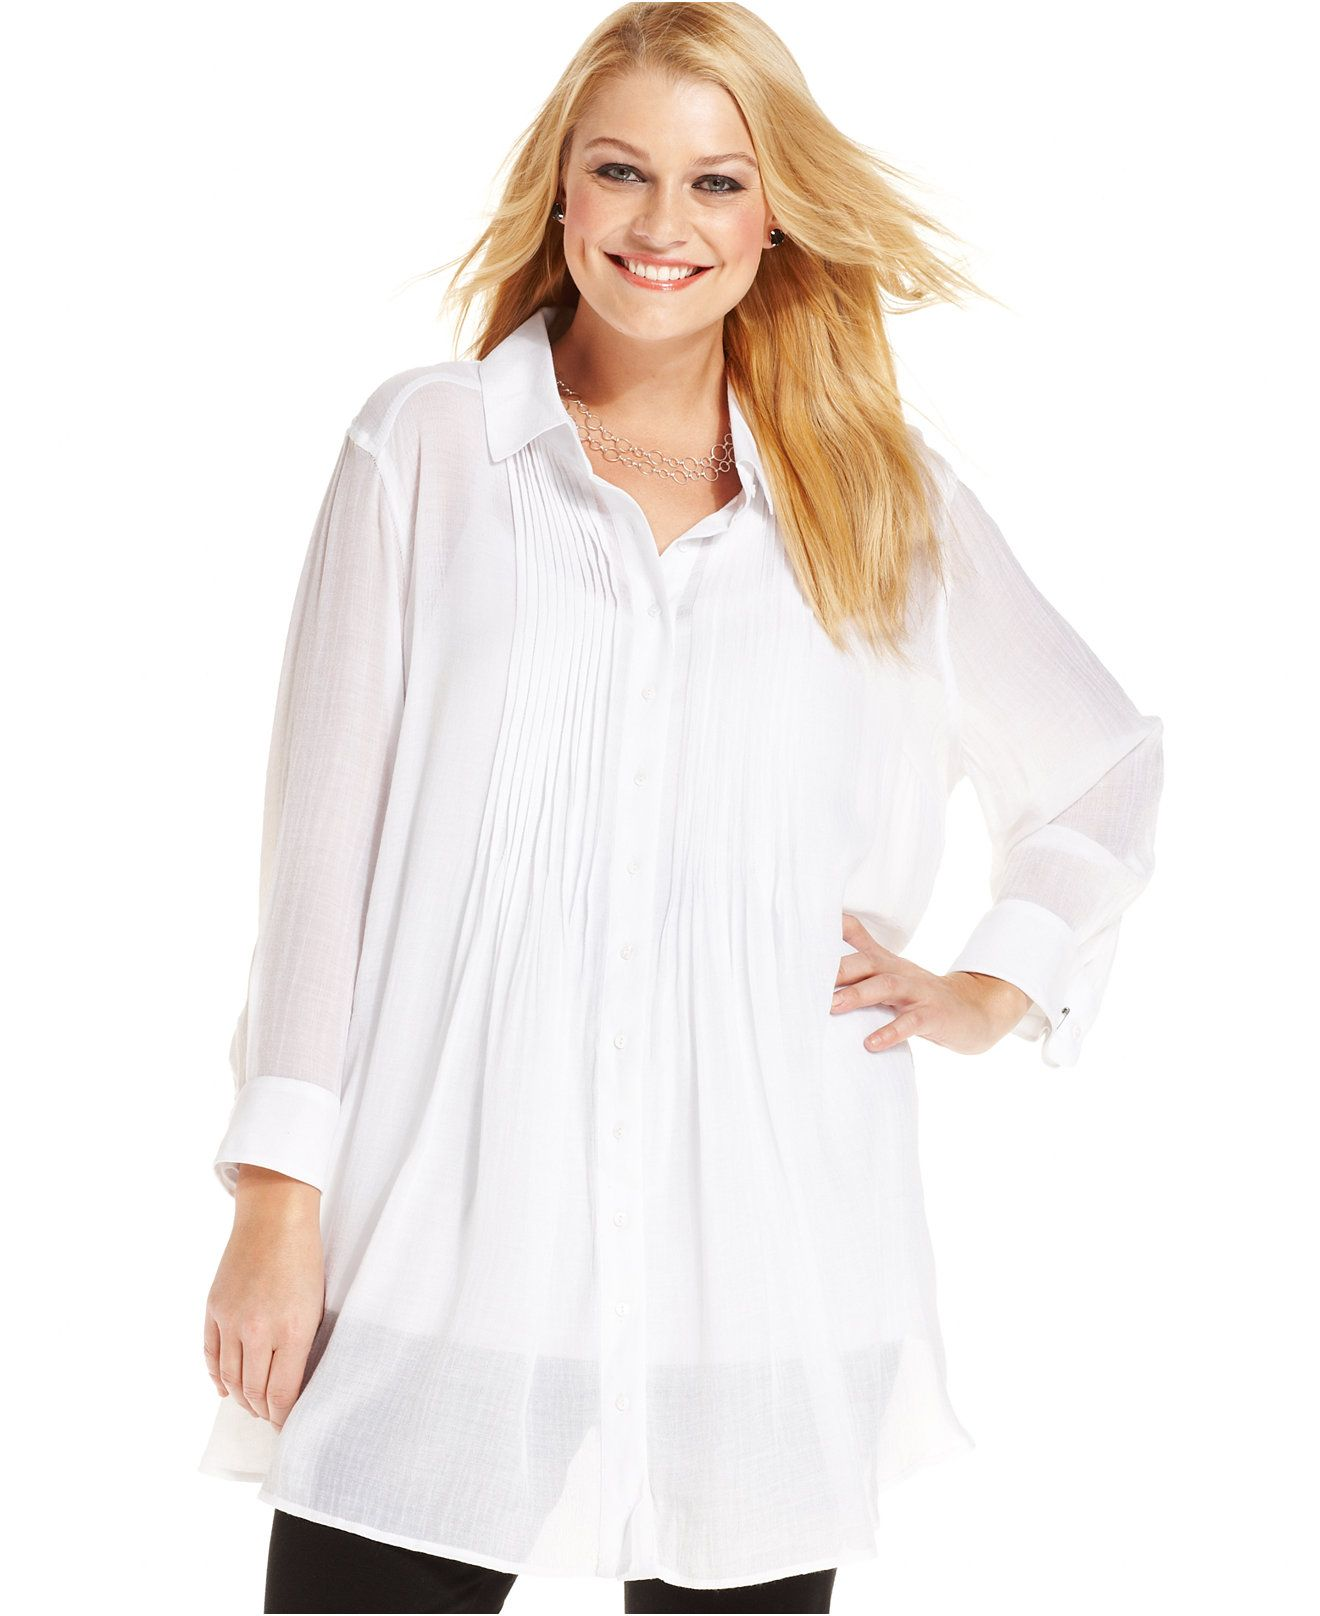 Dressy White Blouses At Macys Rockwall Auction